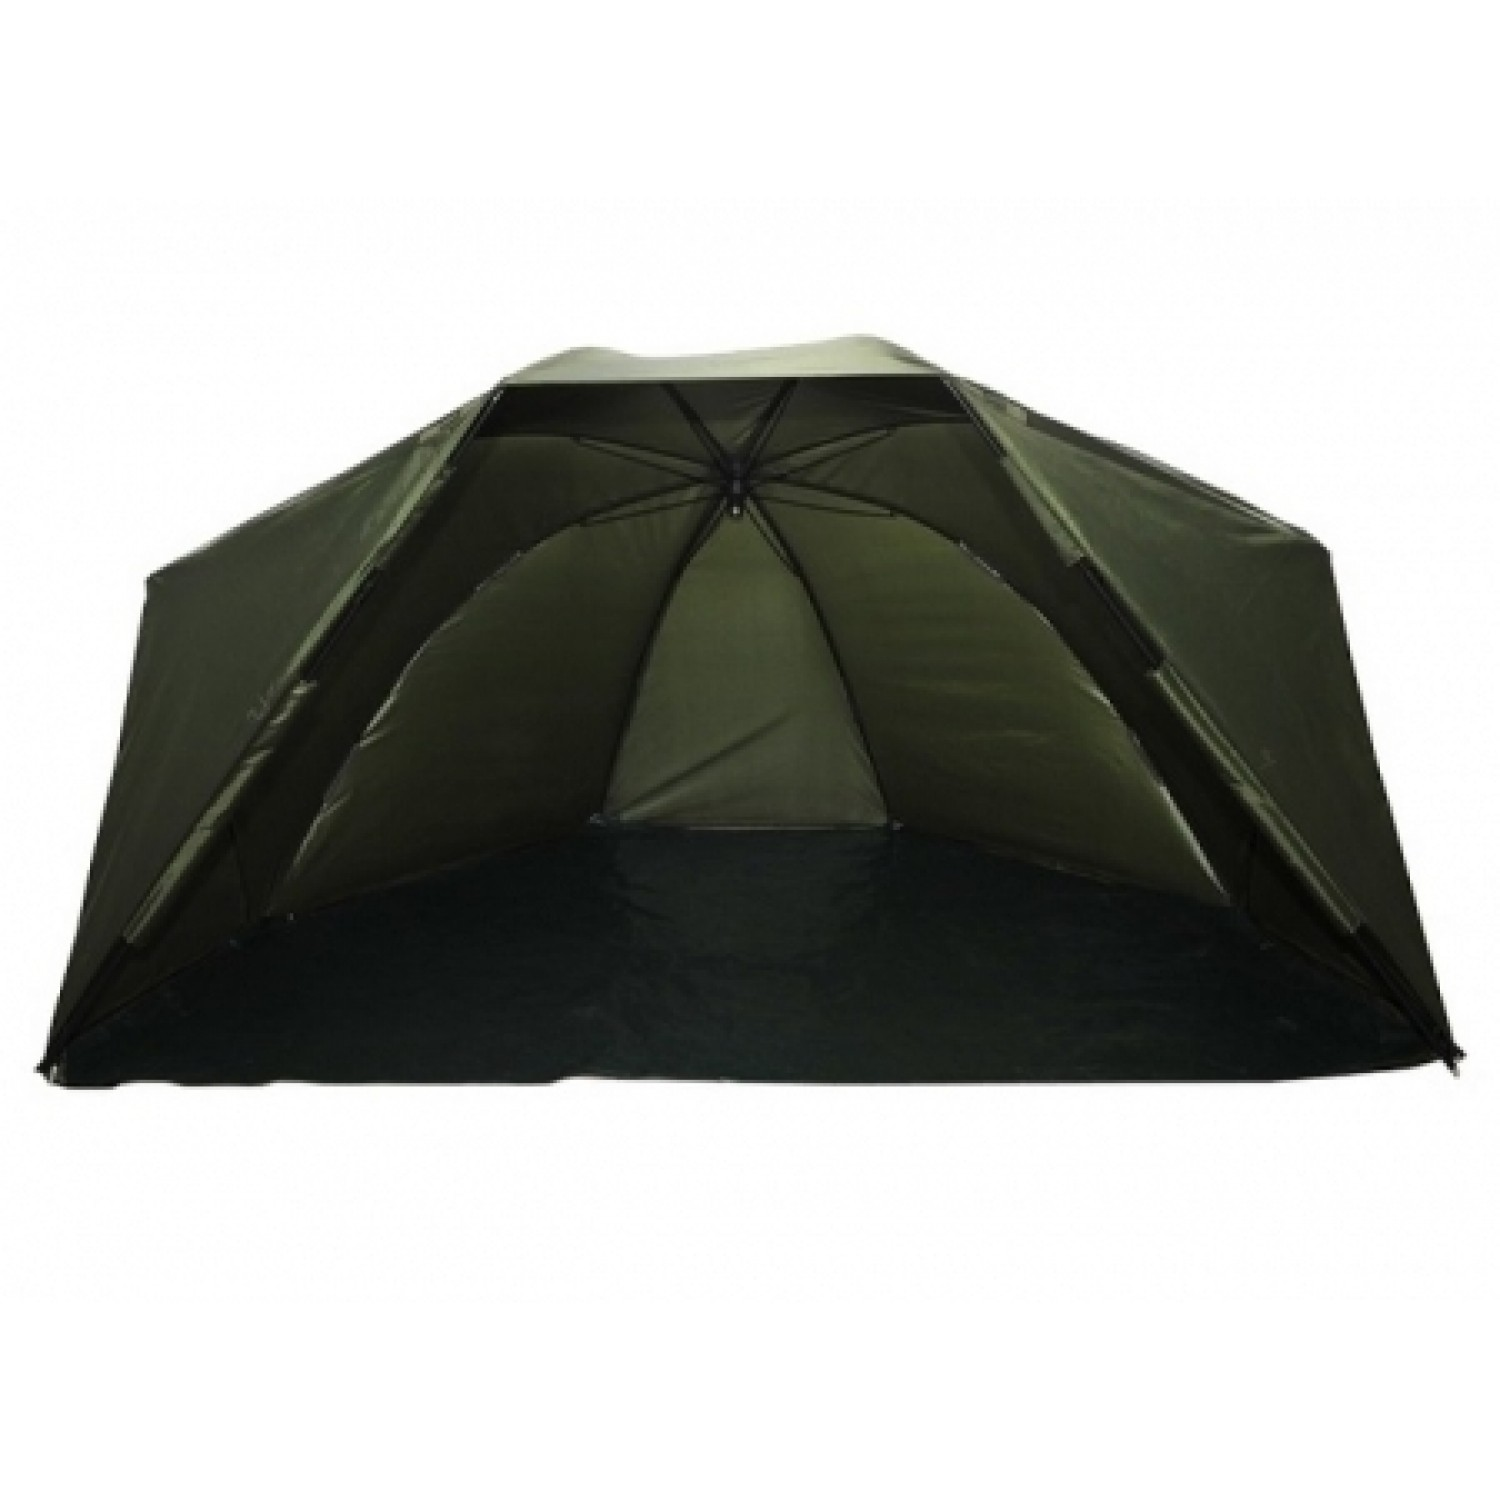 Ehmanns Hot Spot Open Sniper Brolly